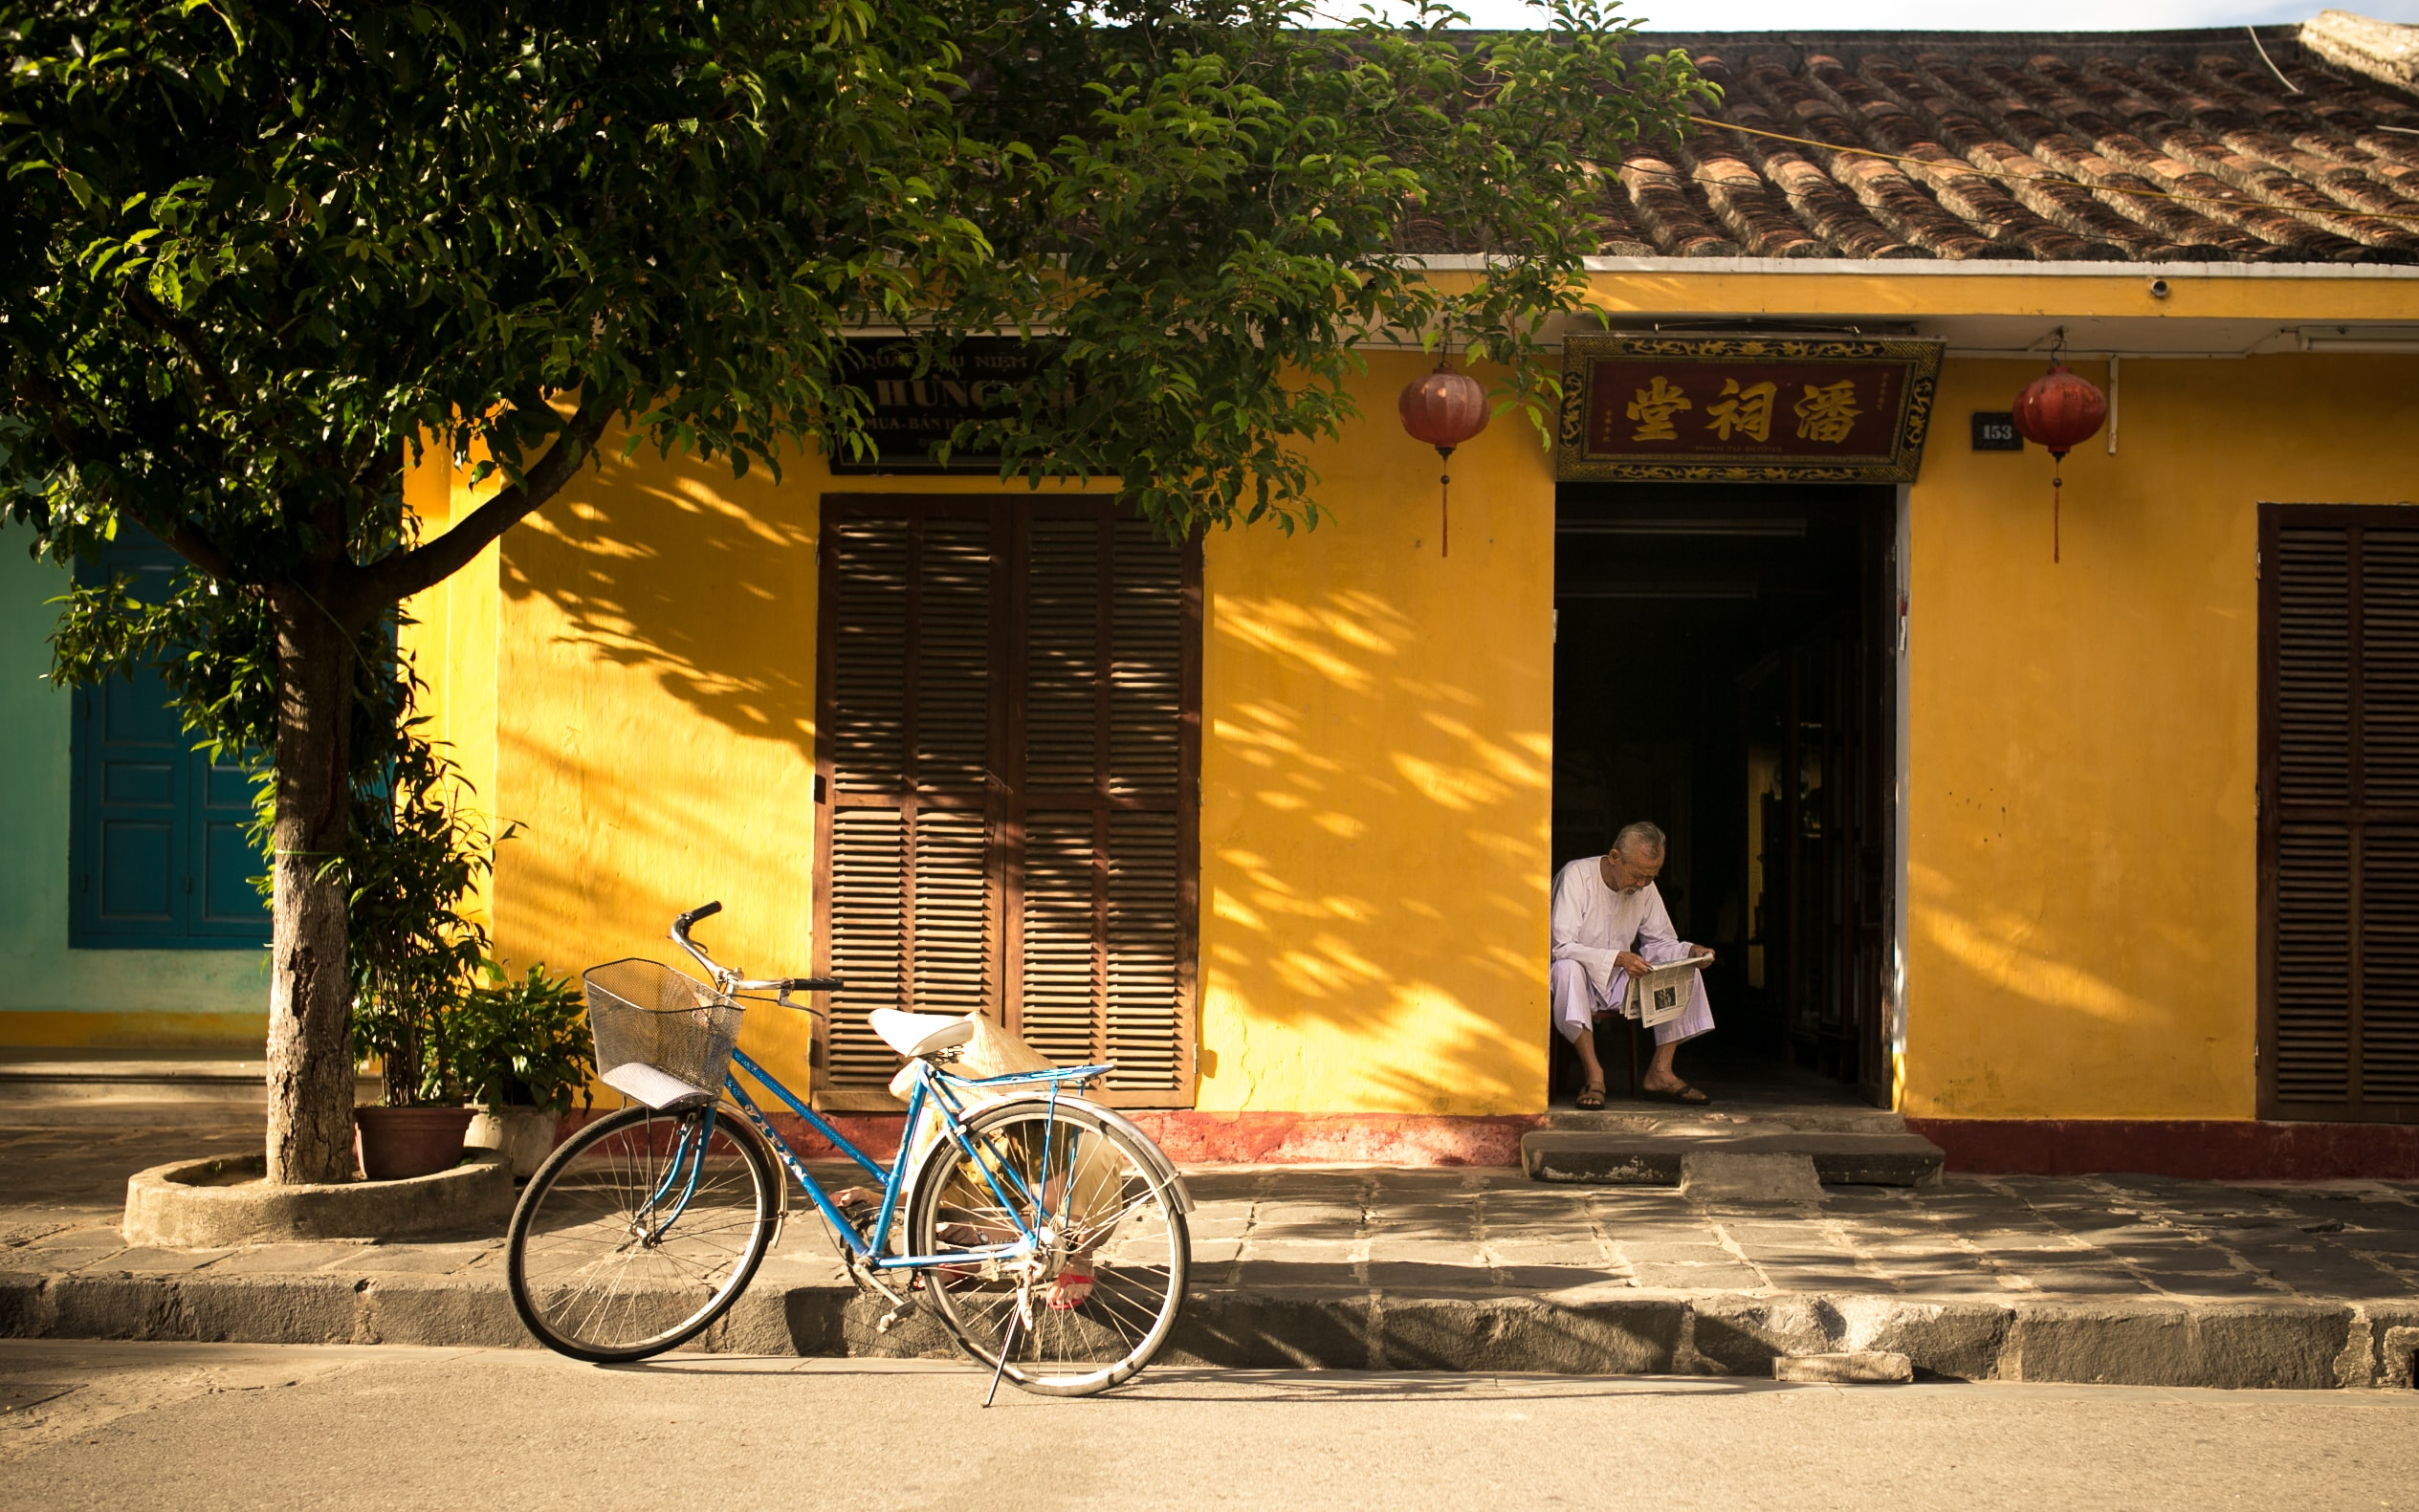 A man sitting on his stoop reading the newspaper and a bicycle leaning on a tree in Asia